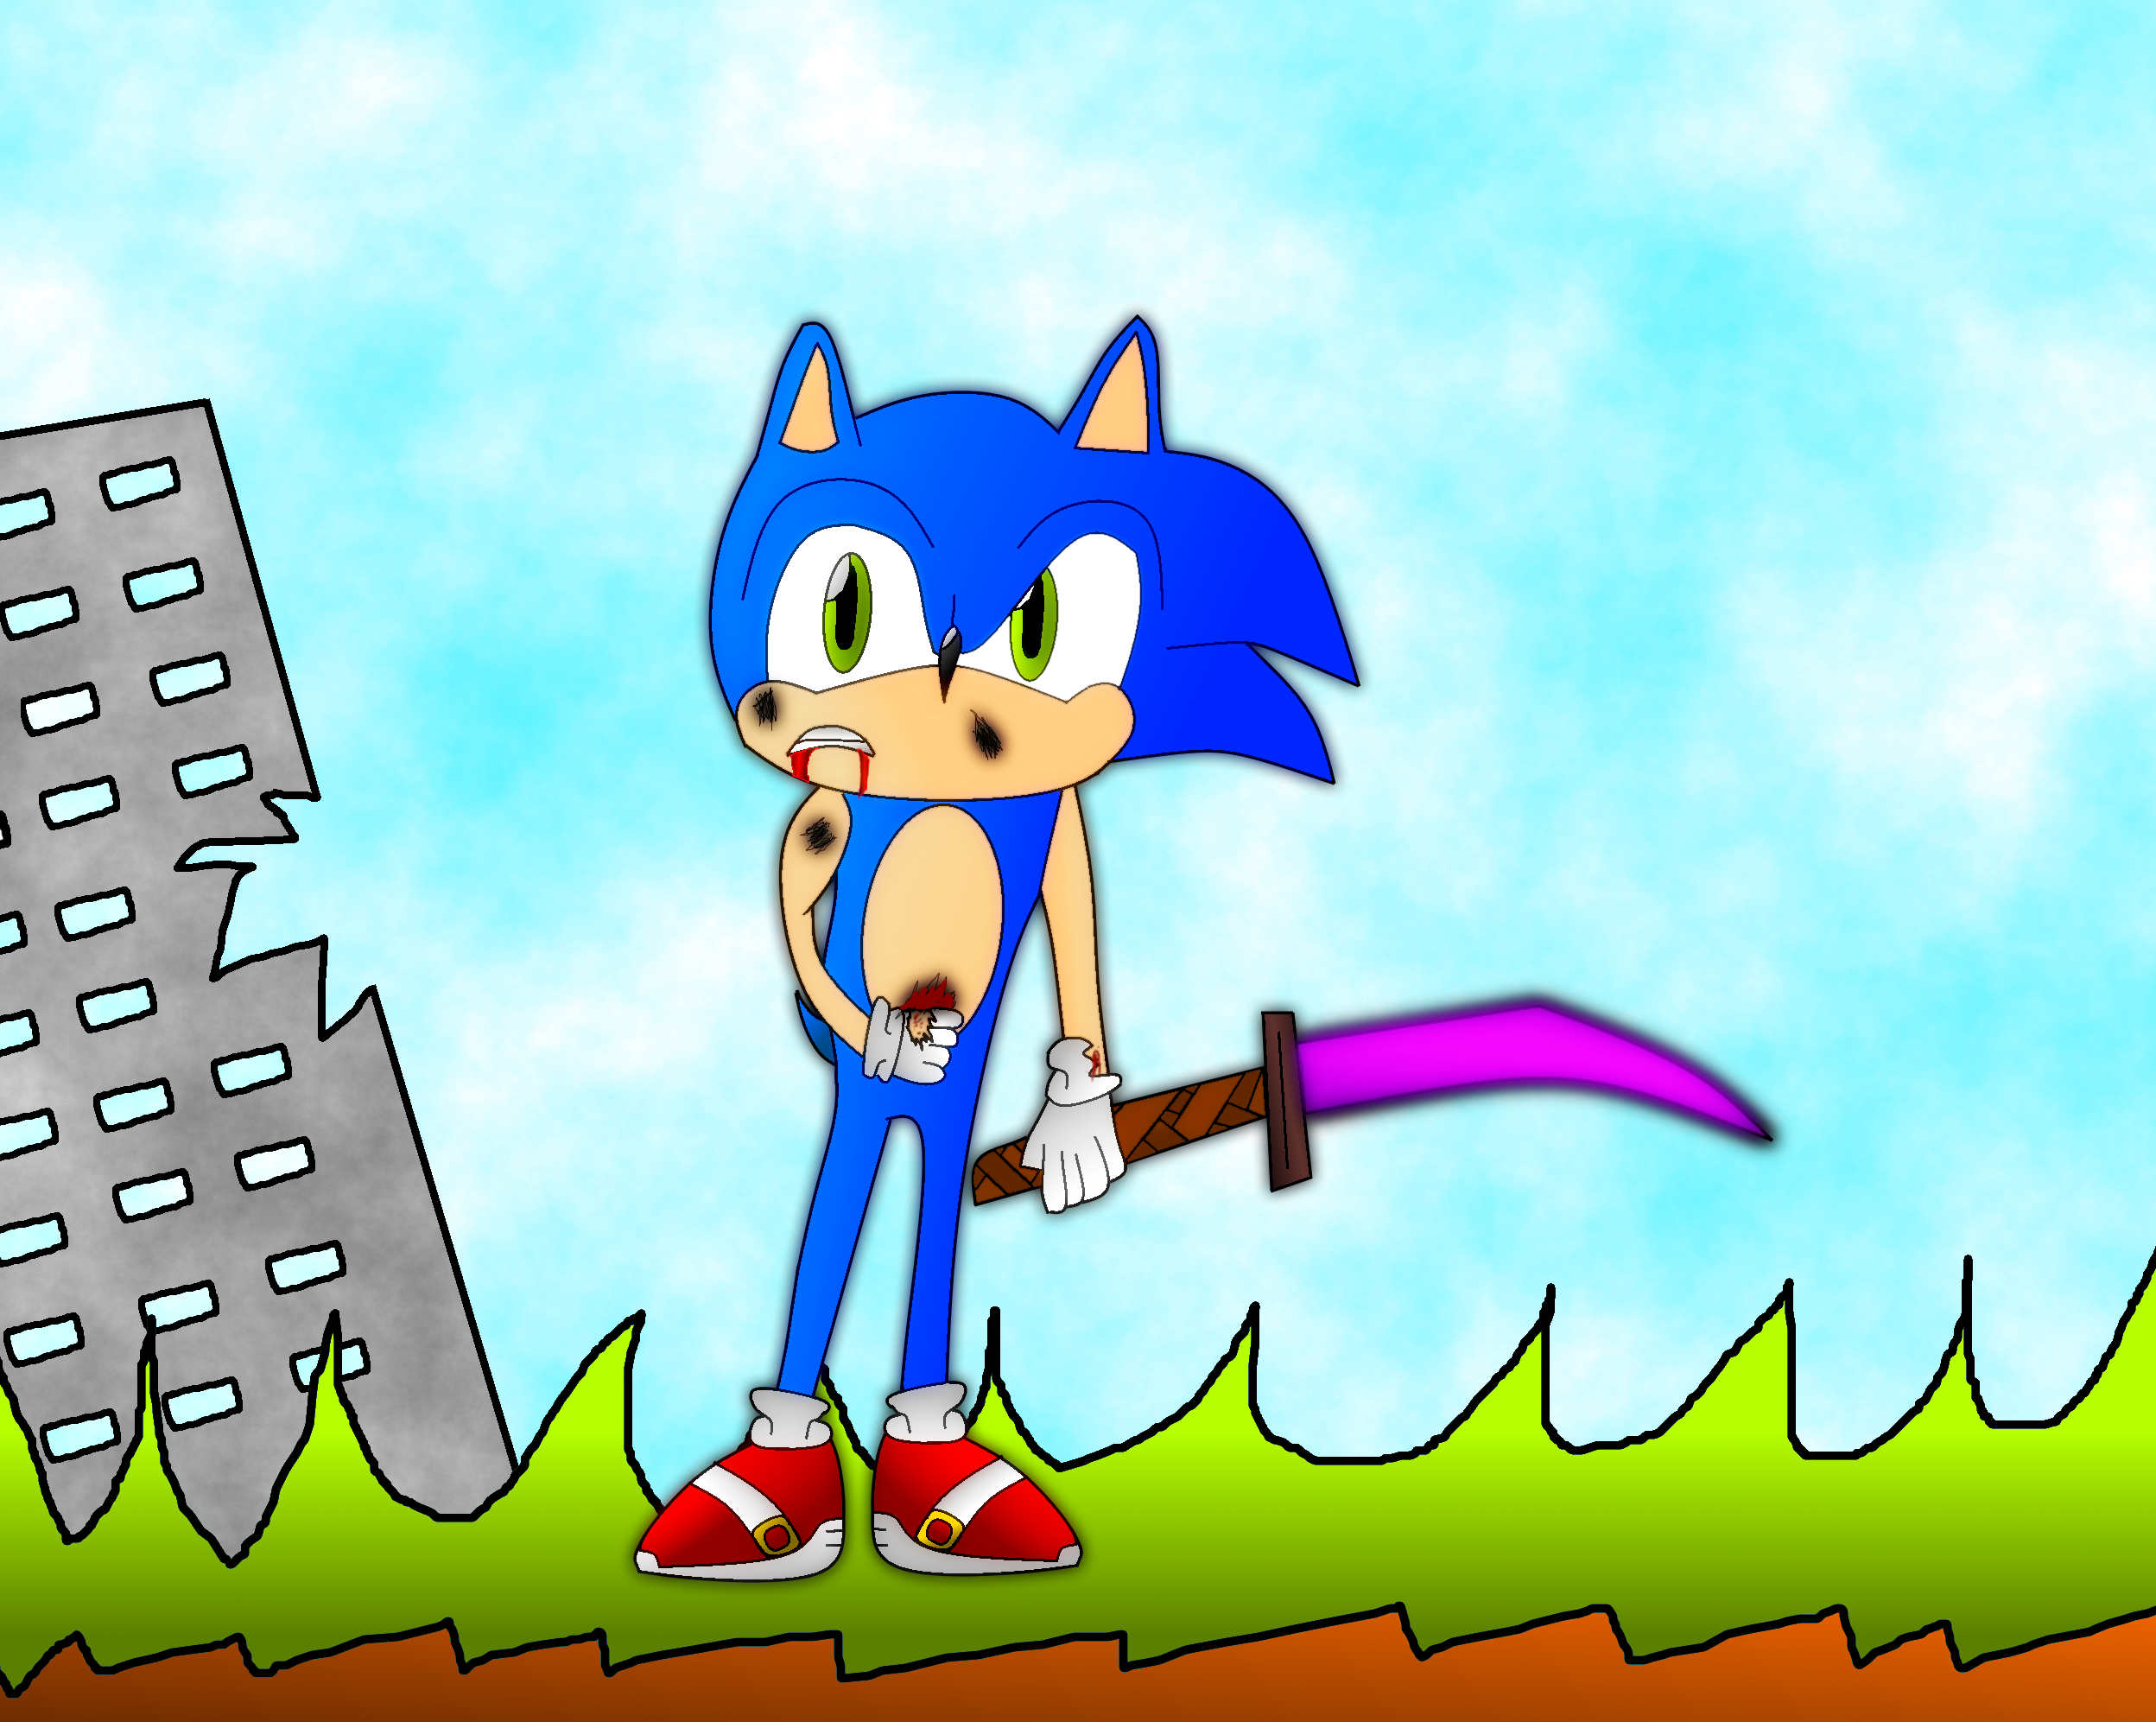 Sonic won't give up!